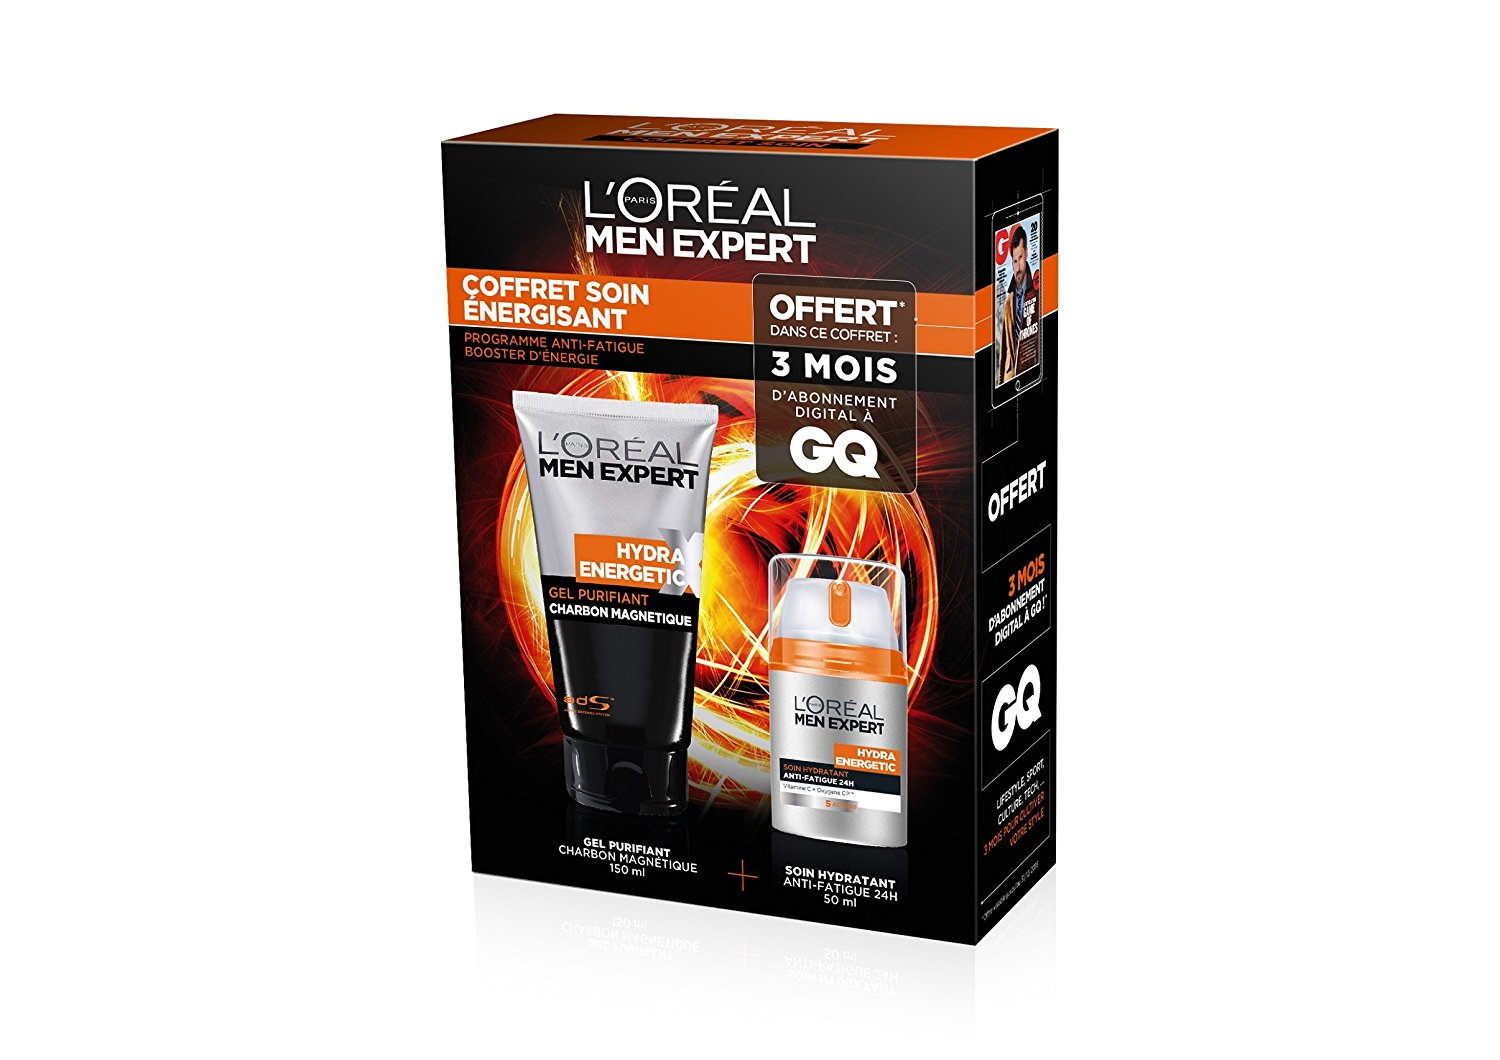 Men Expert Coffret Hydra Energetic L'OREAL